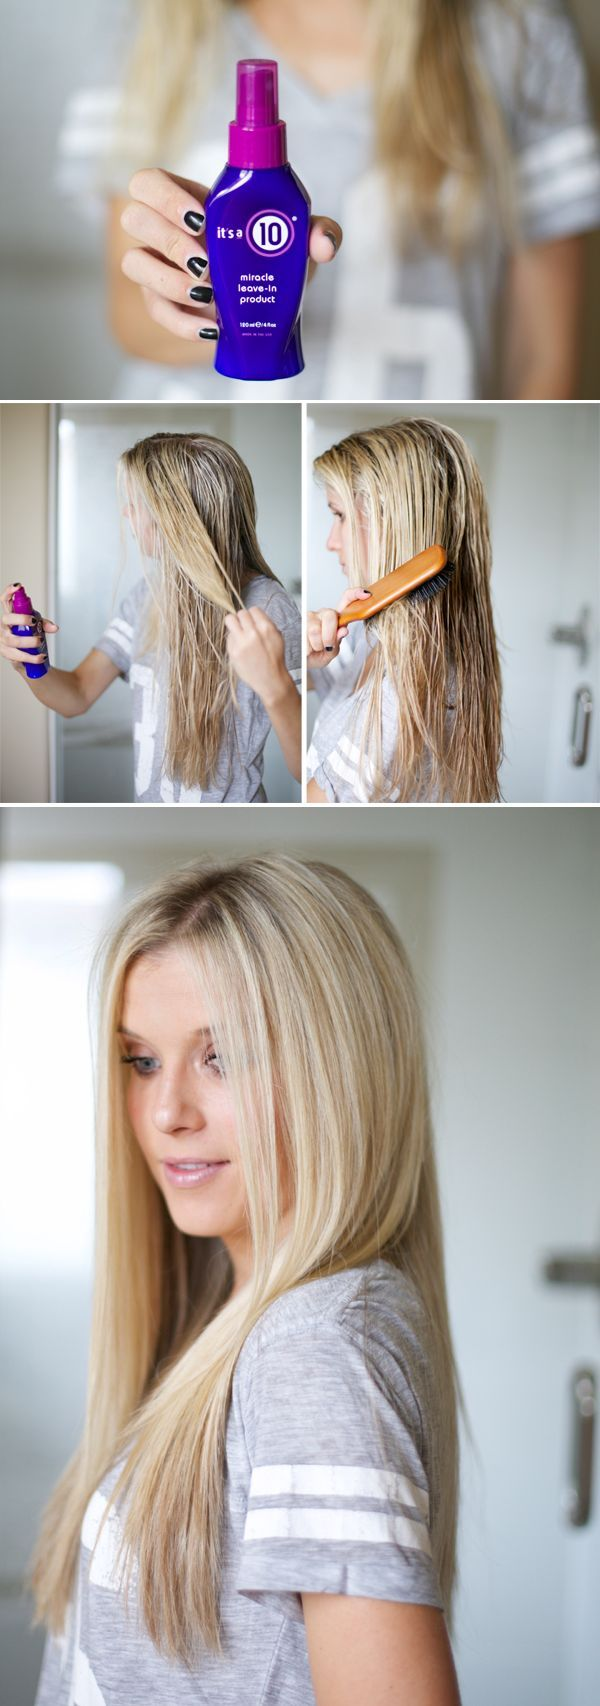 Product Review Itus a Hair Styling Spray Curly frizzy hair